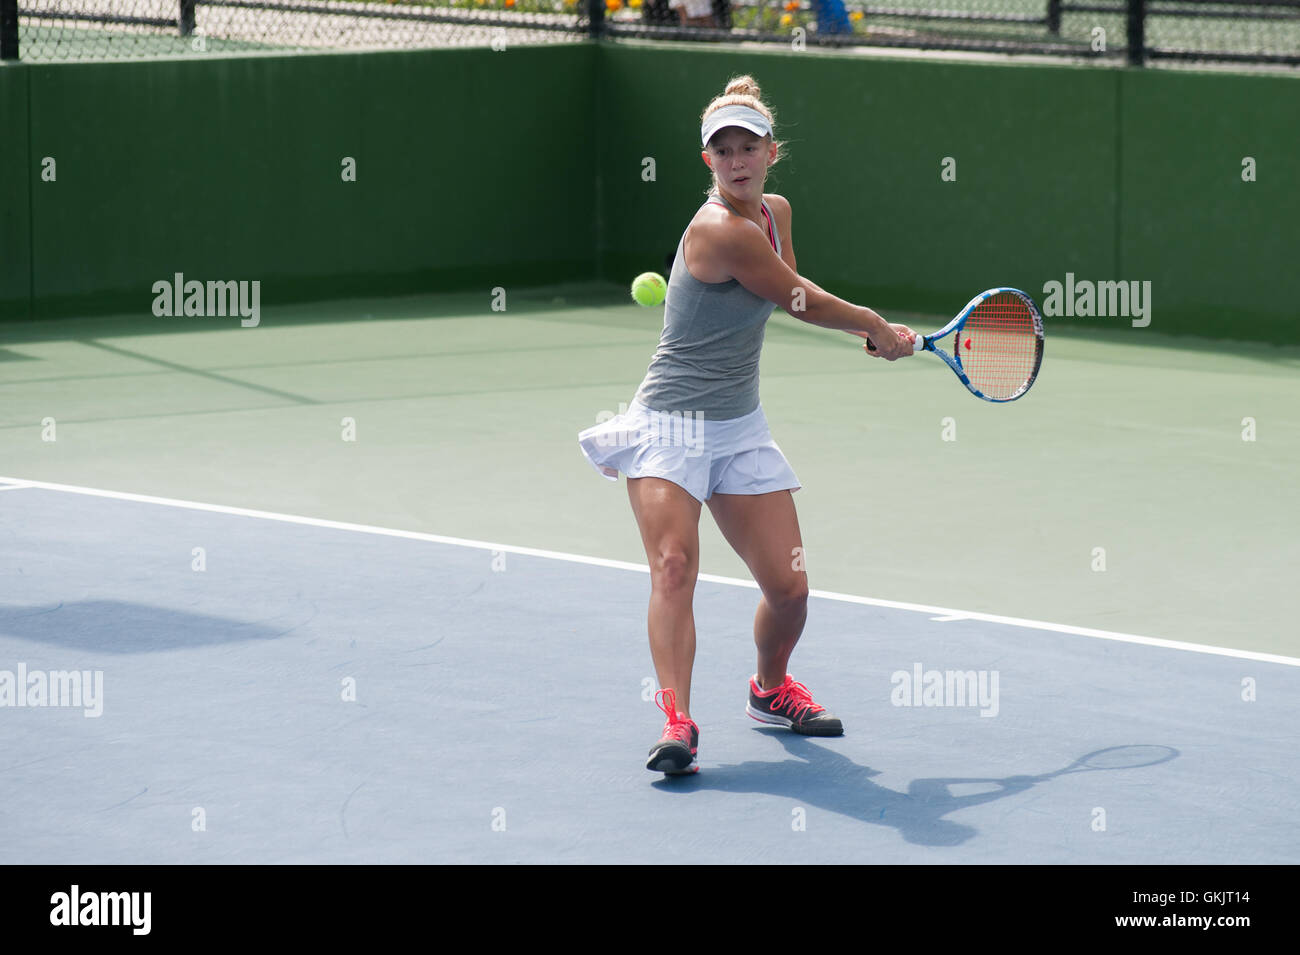 Female tennis athlete ready to hit a two handed backhand - Stock Image